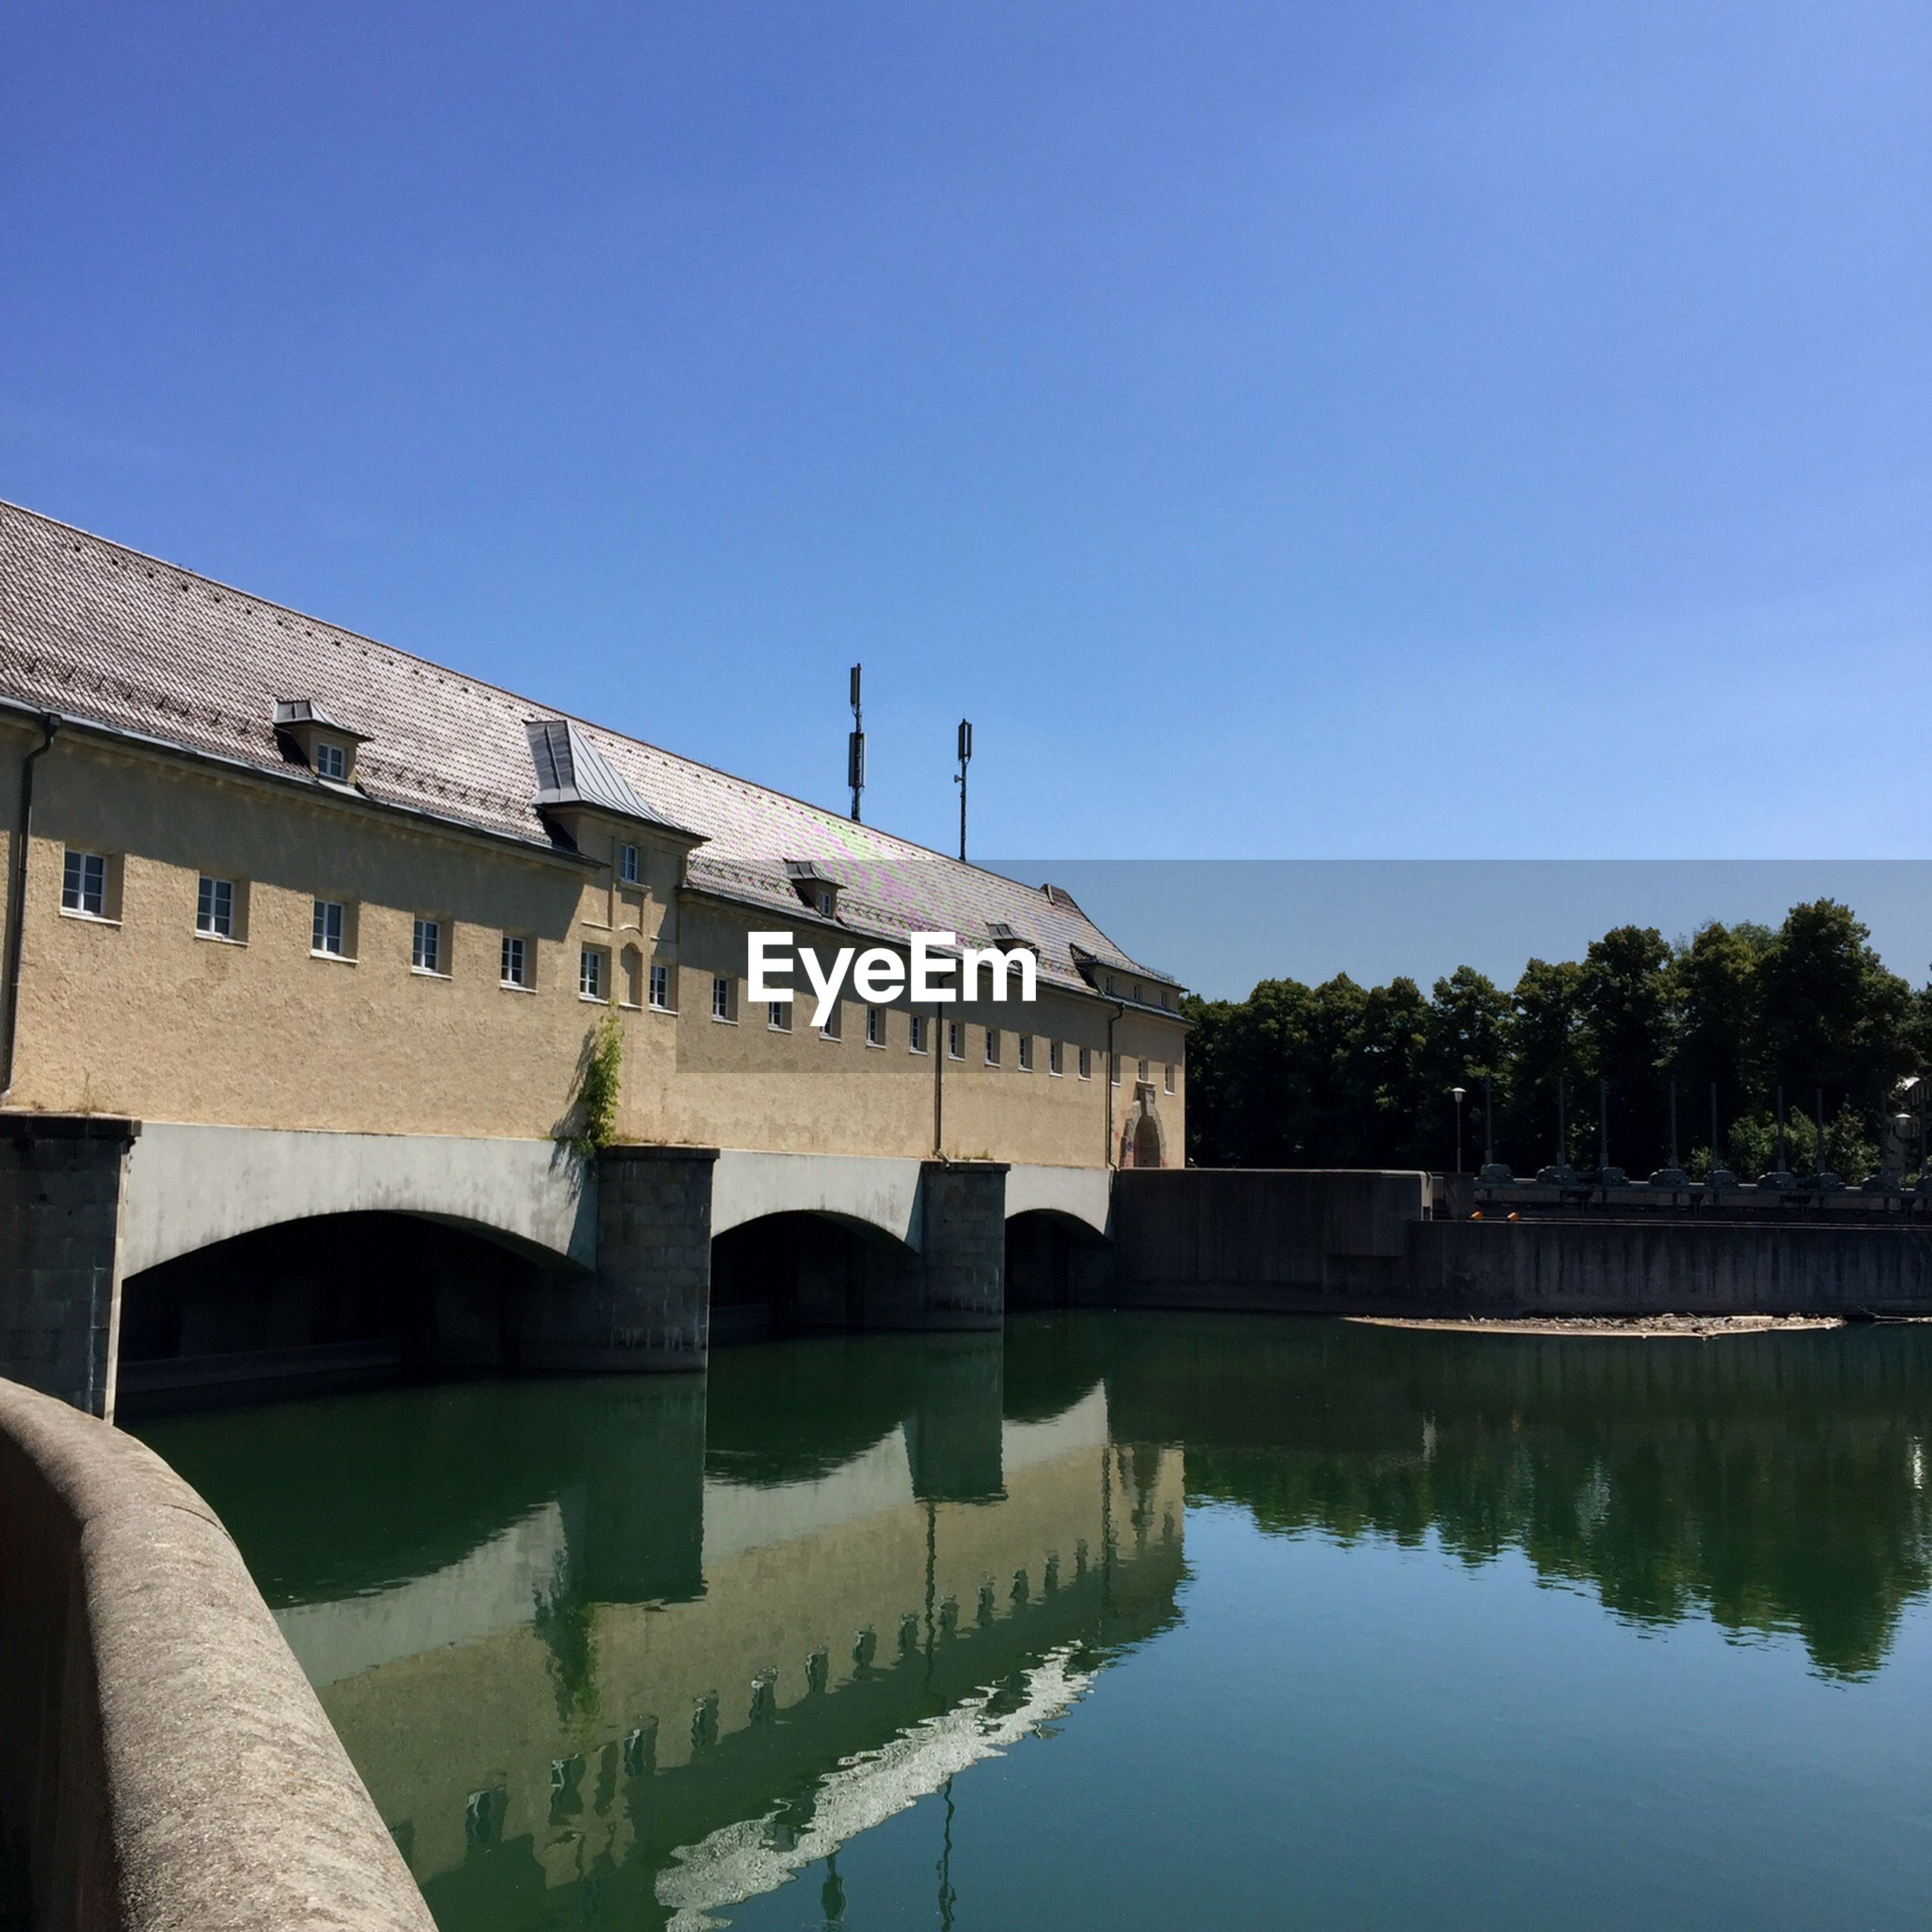 Exterior of building over river against clear blue sky